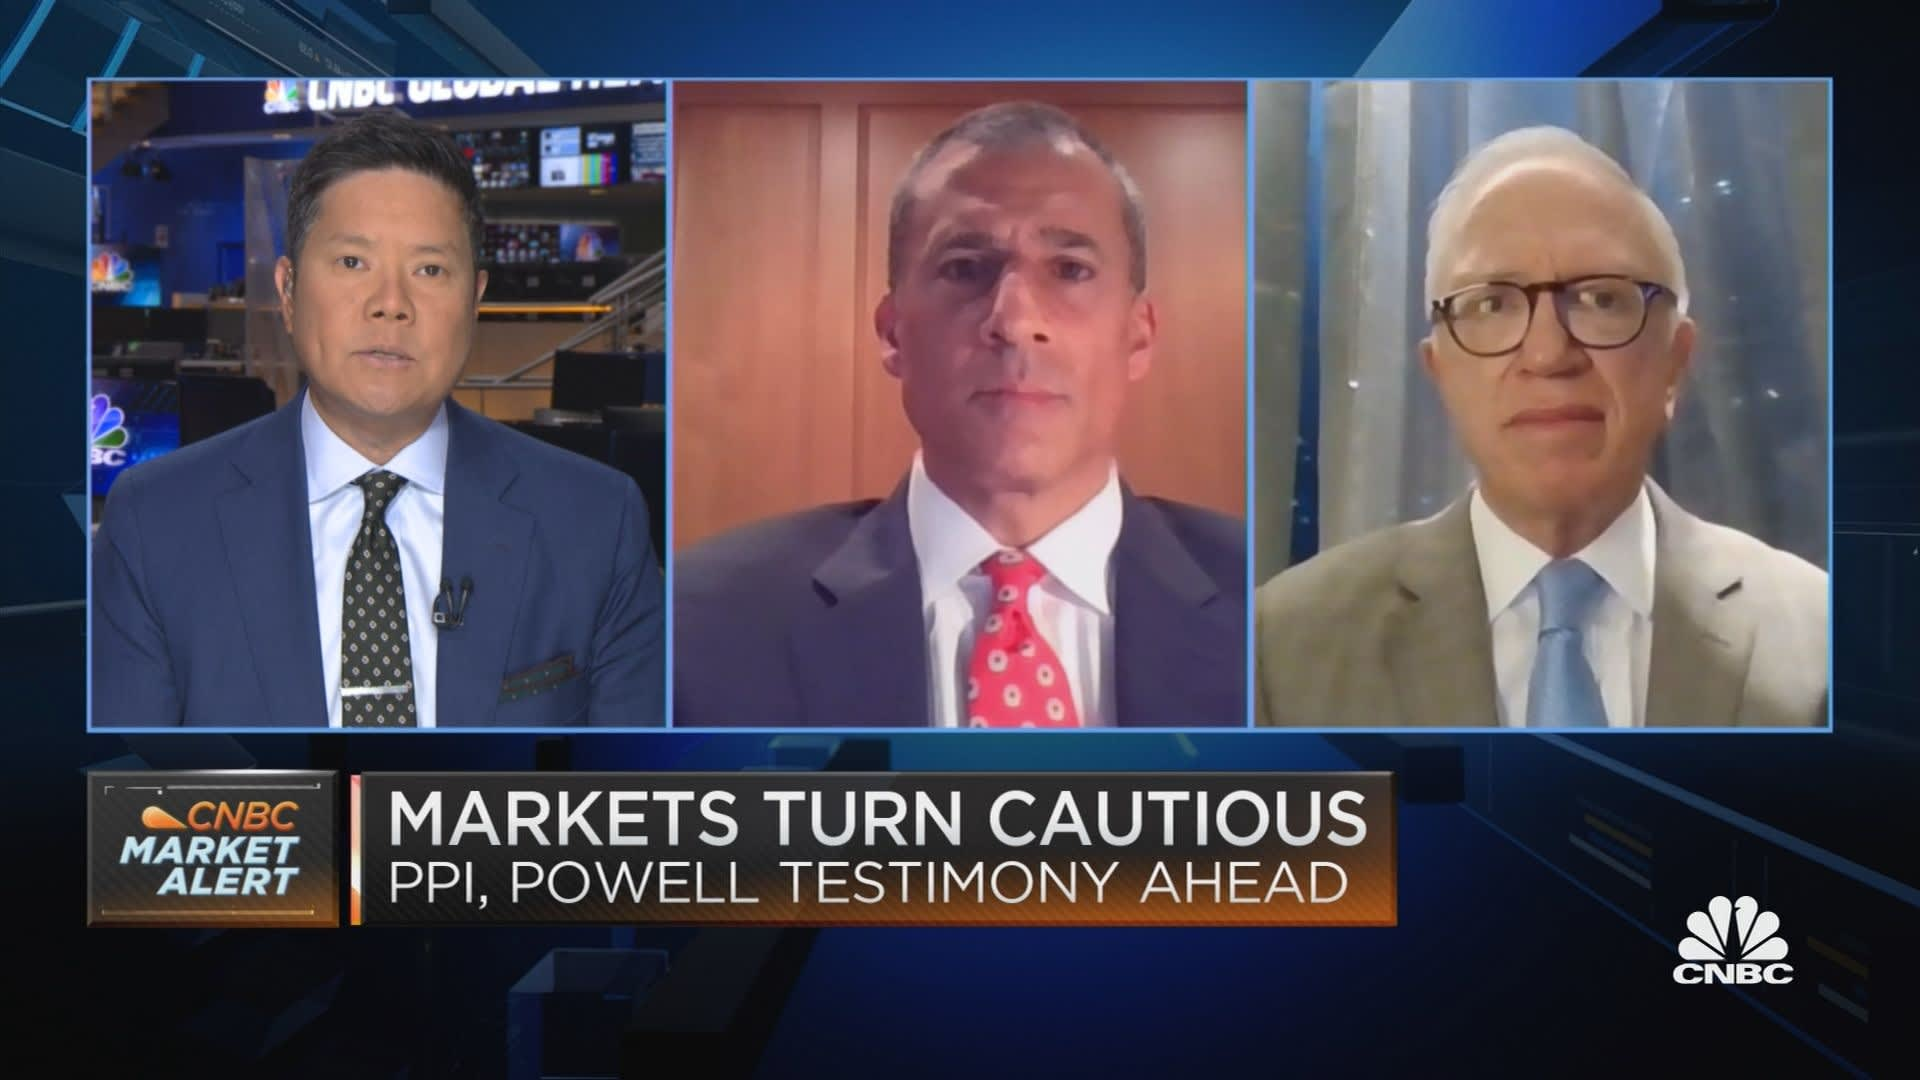 Top market watchers say the Fed is so dovish that it's setting stocks up for a 'Goldilocks-cubed' scenario